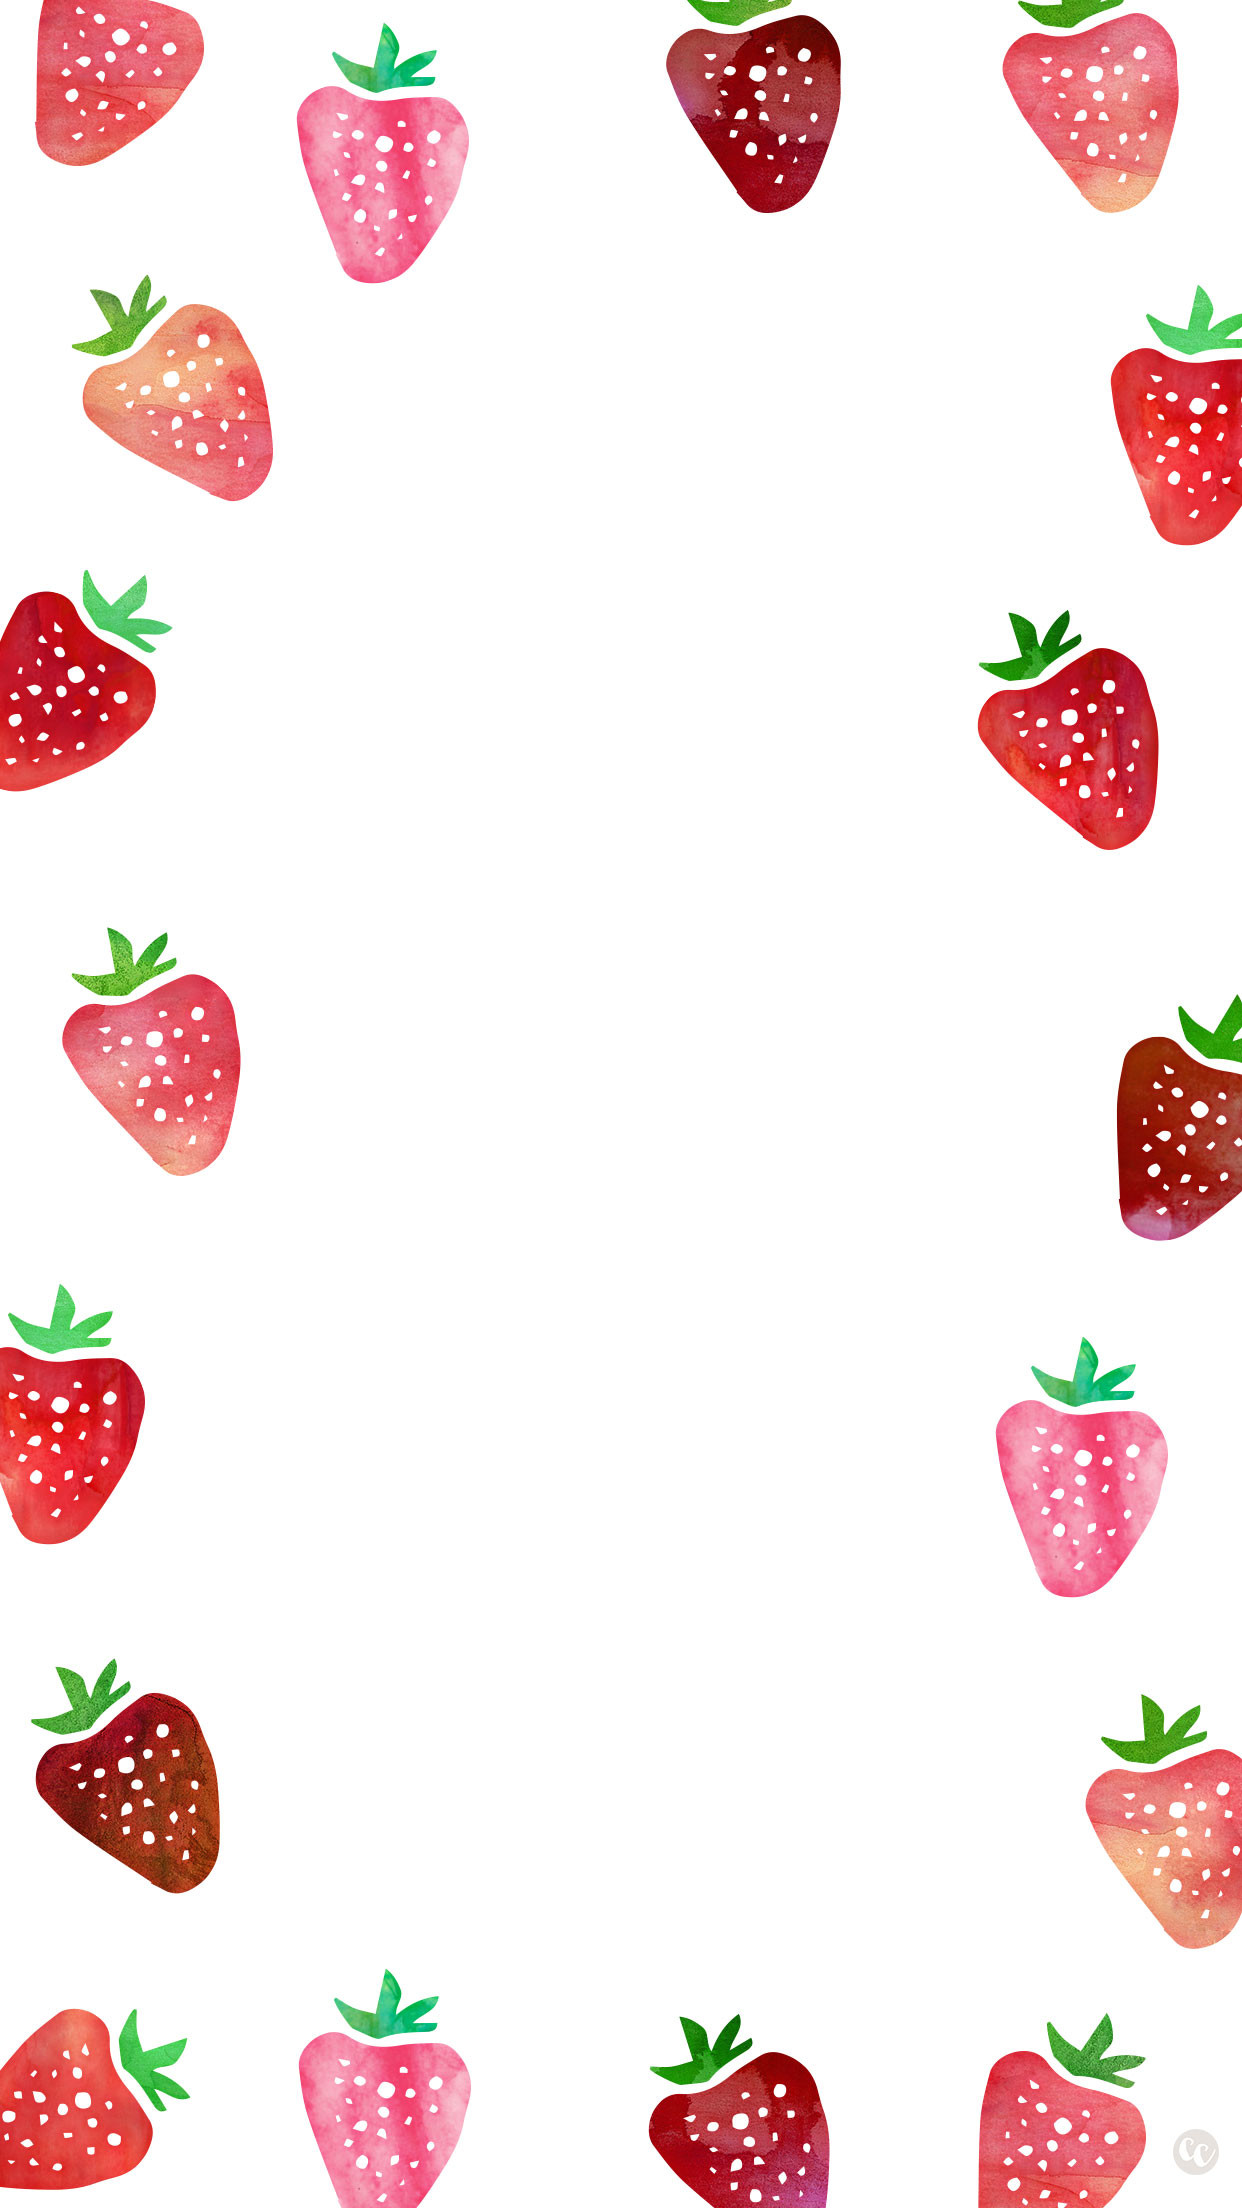 1242x2208 Dress up your smartphone with this cute strawberry wallpaper! Also  available for desktop and iPad